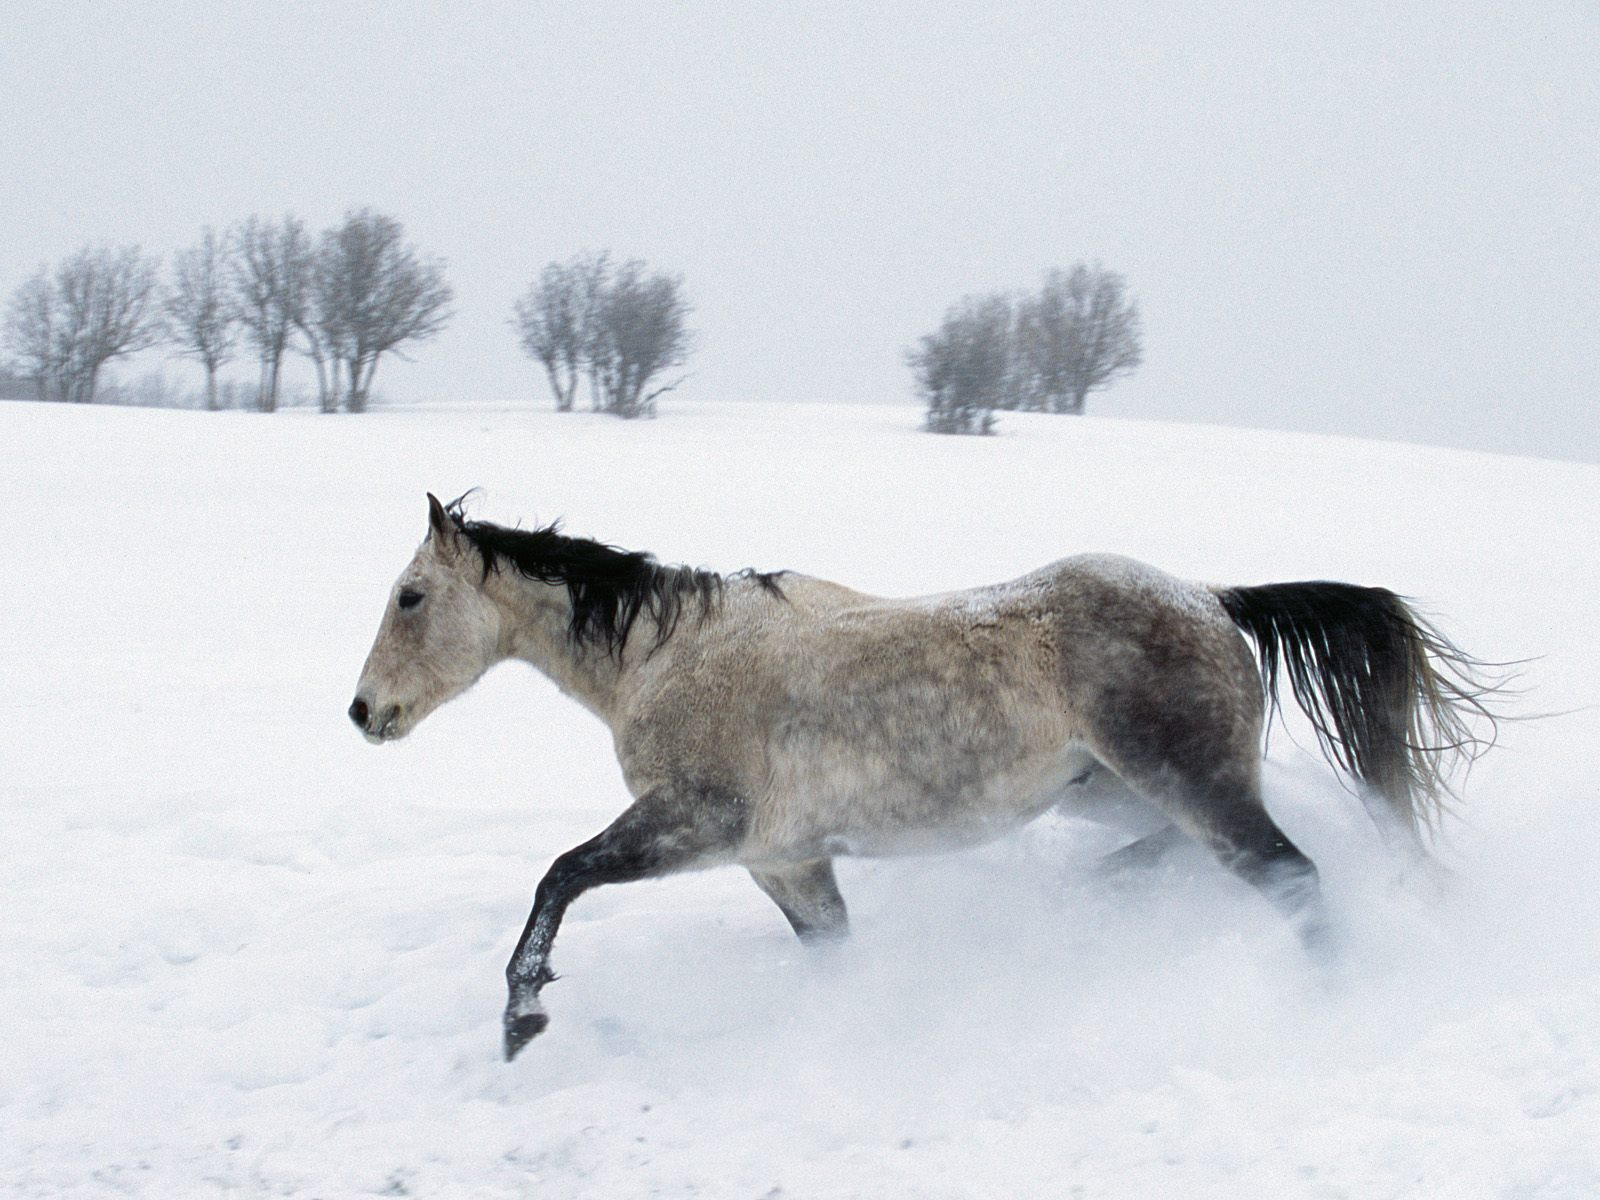 Horse Desktop Wallpapers for HD Widescreen and Mobile Page 2 1600x1200